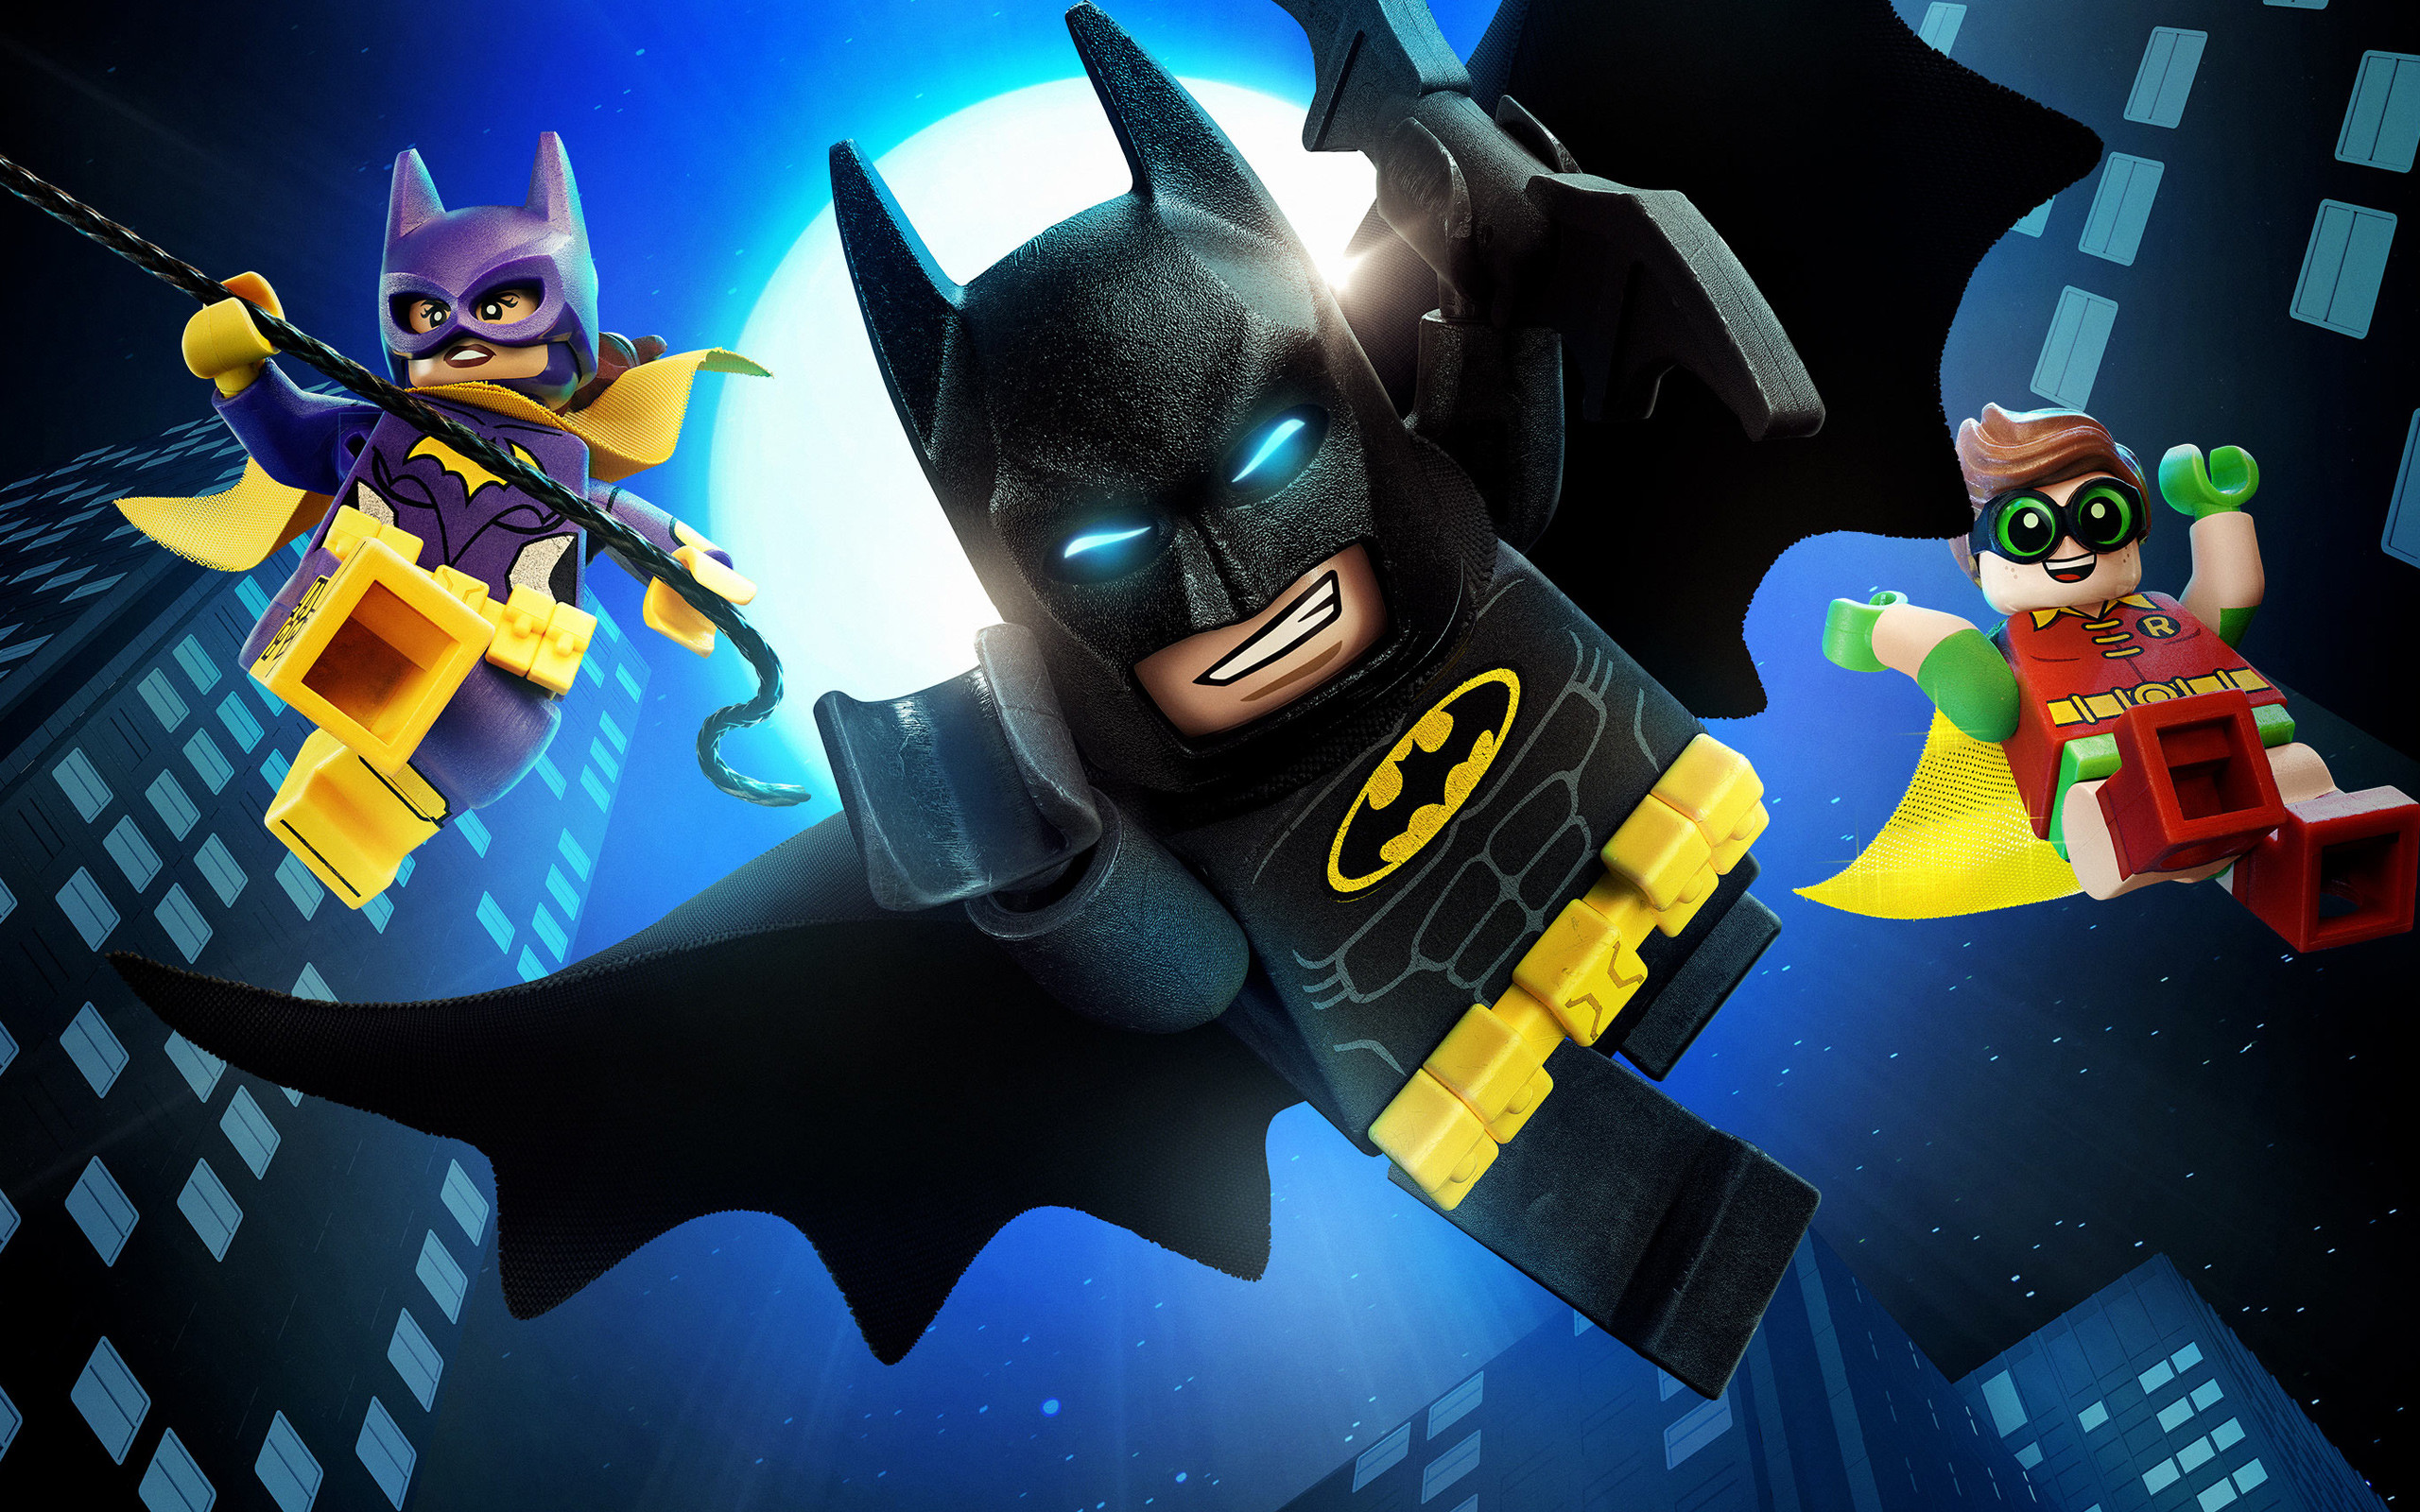 2560x1600 HD The LEGO Batman Movie wallpaper | The LEGO Batman Movie wallpapers hd |  Pinterest | Movie wallpapers, Lego batman movie and Lego batman